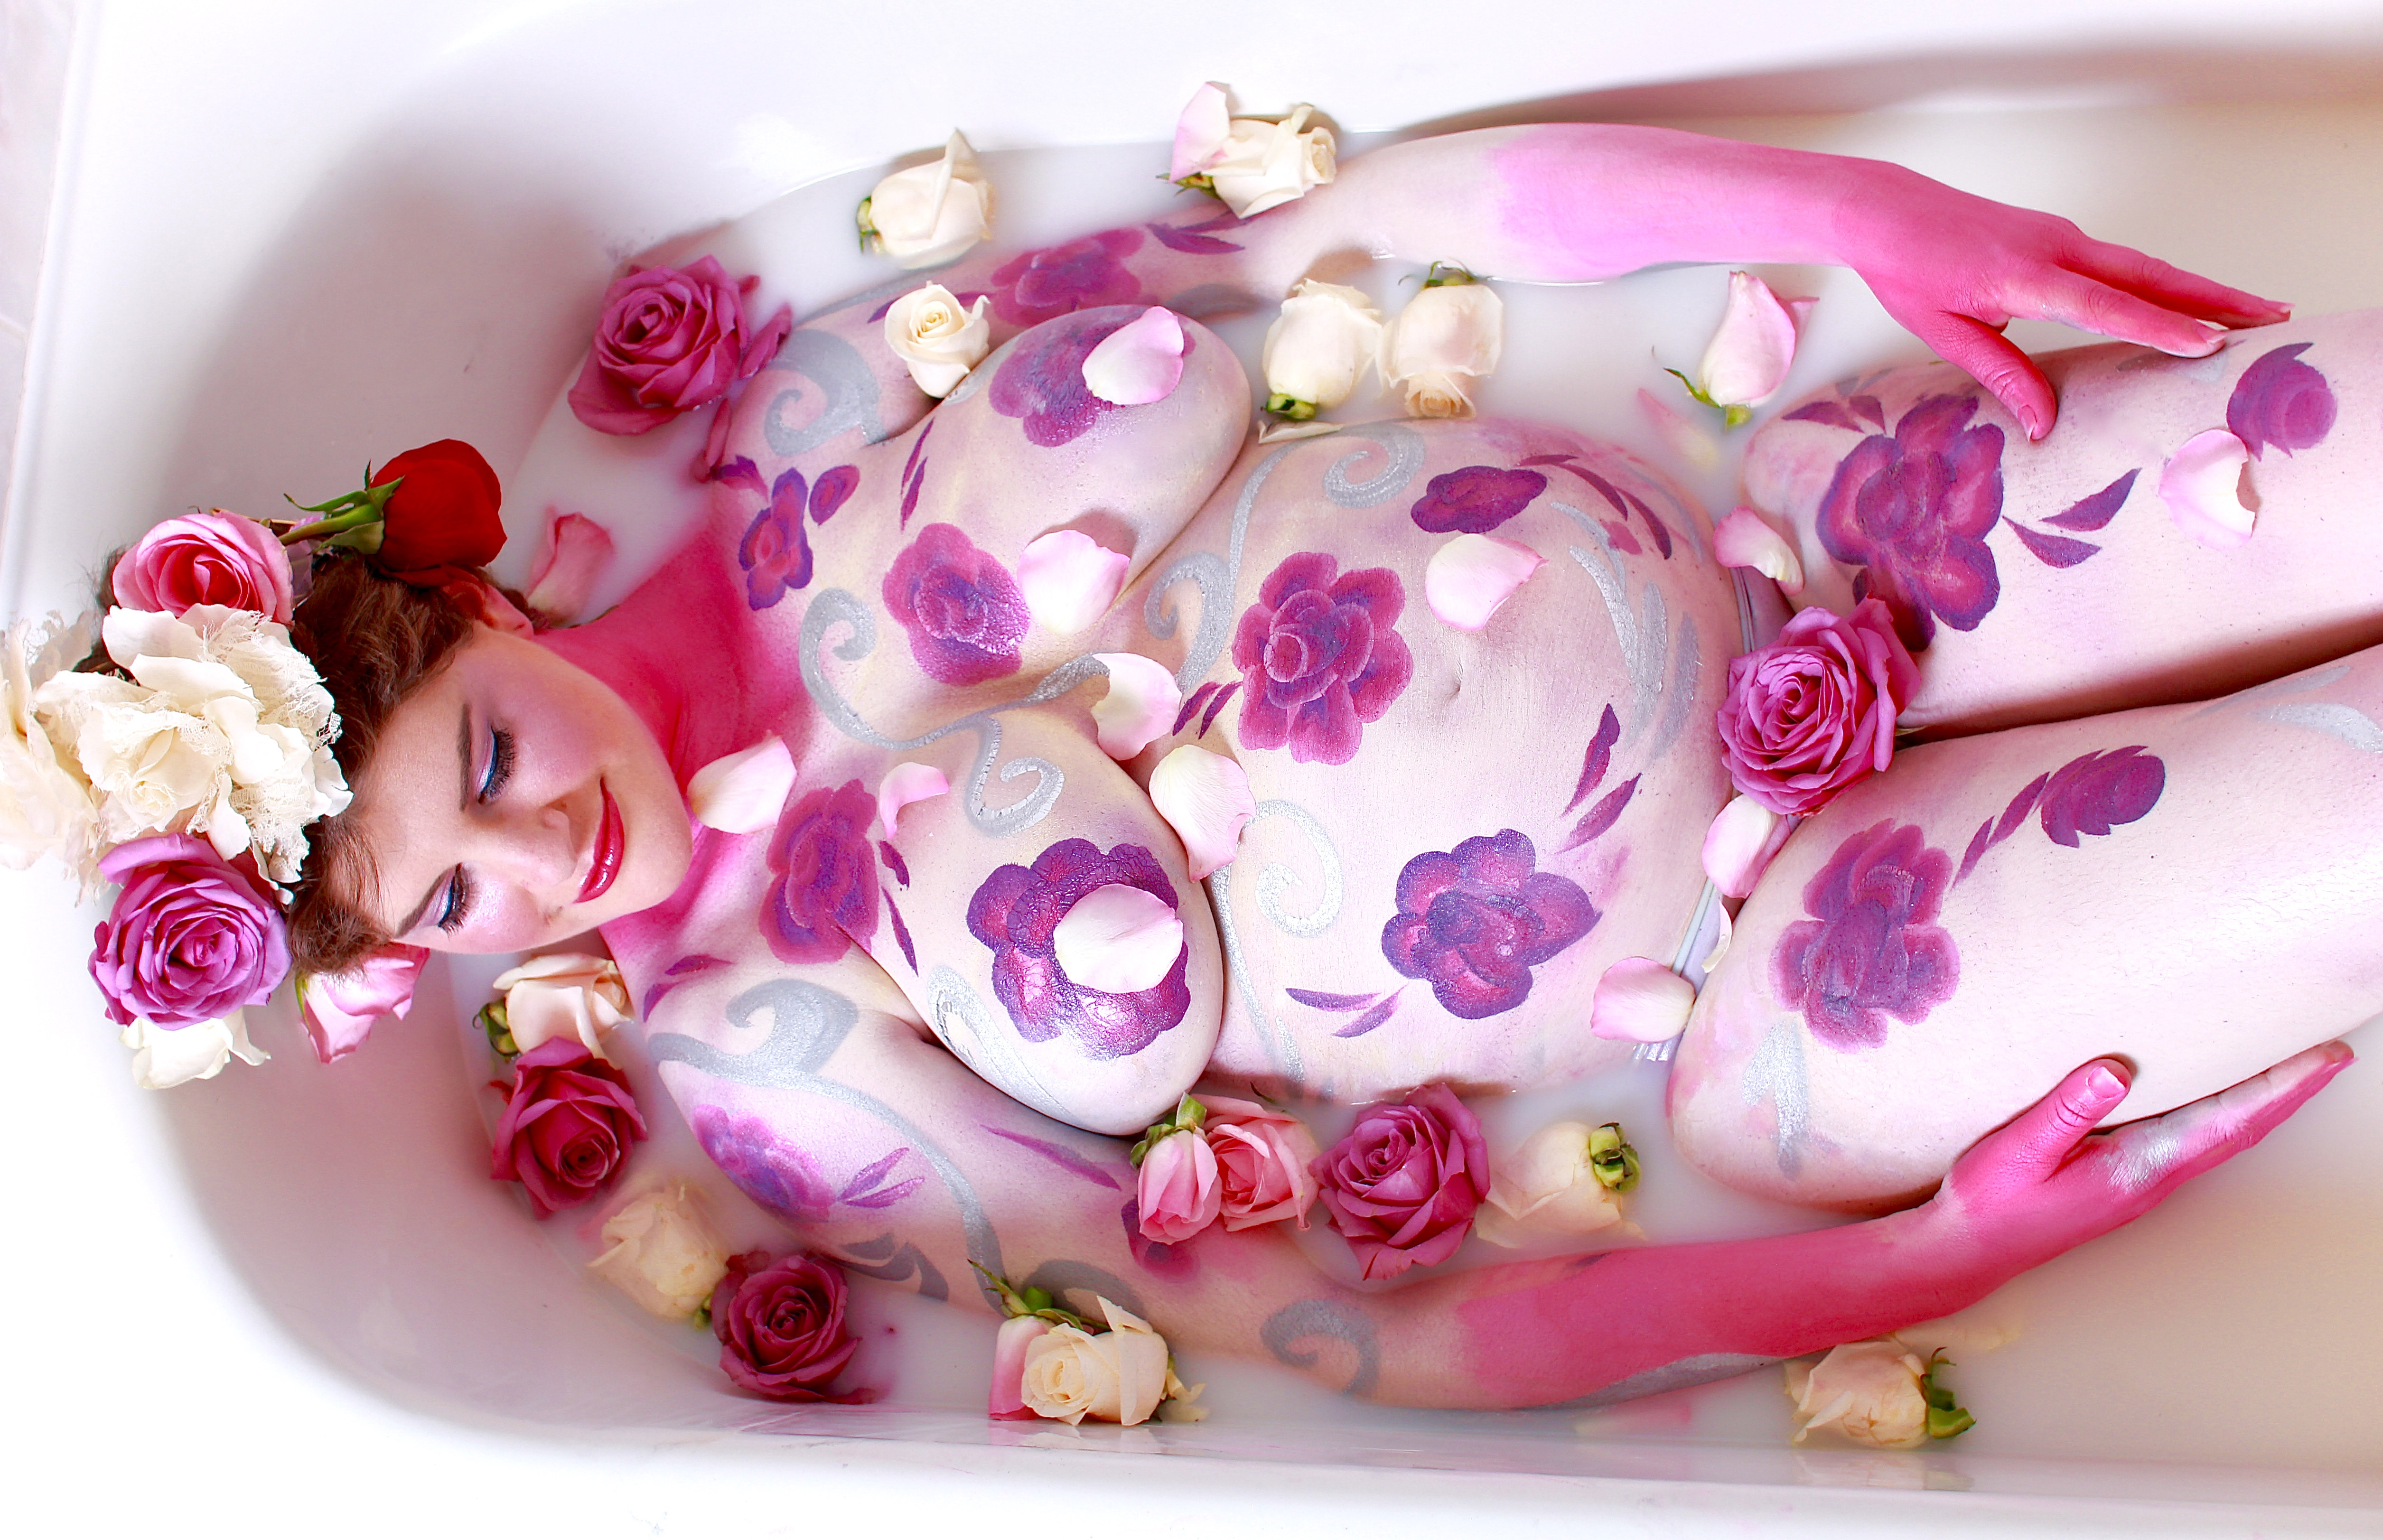 Milk Bath, Roses & Bodypaint